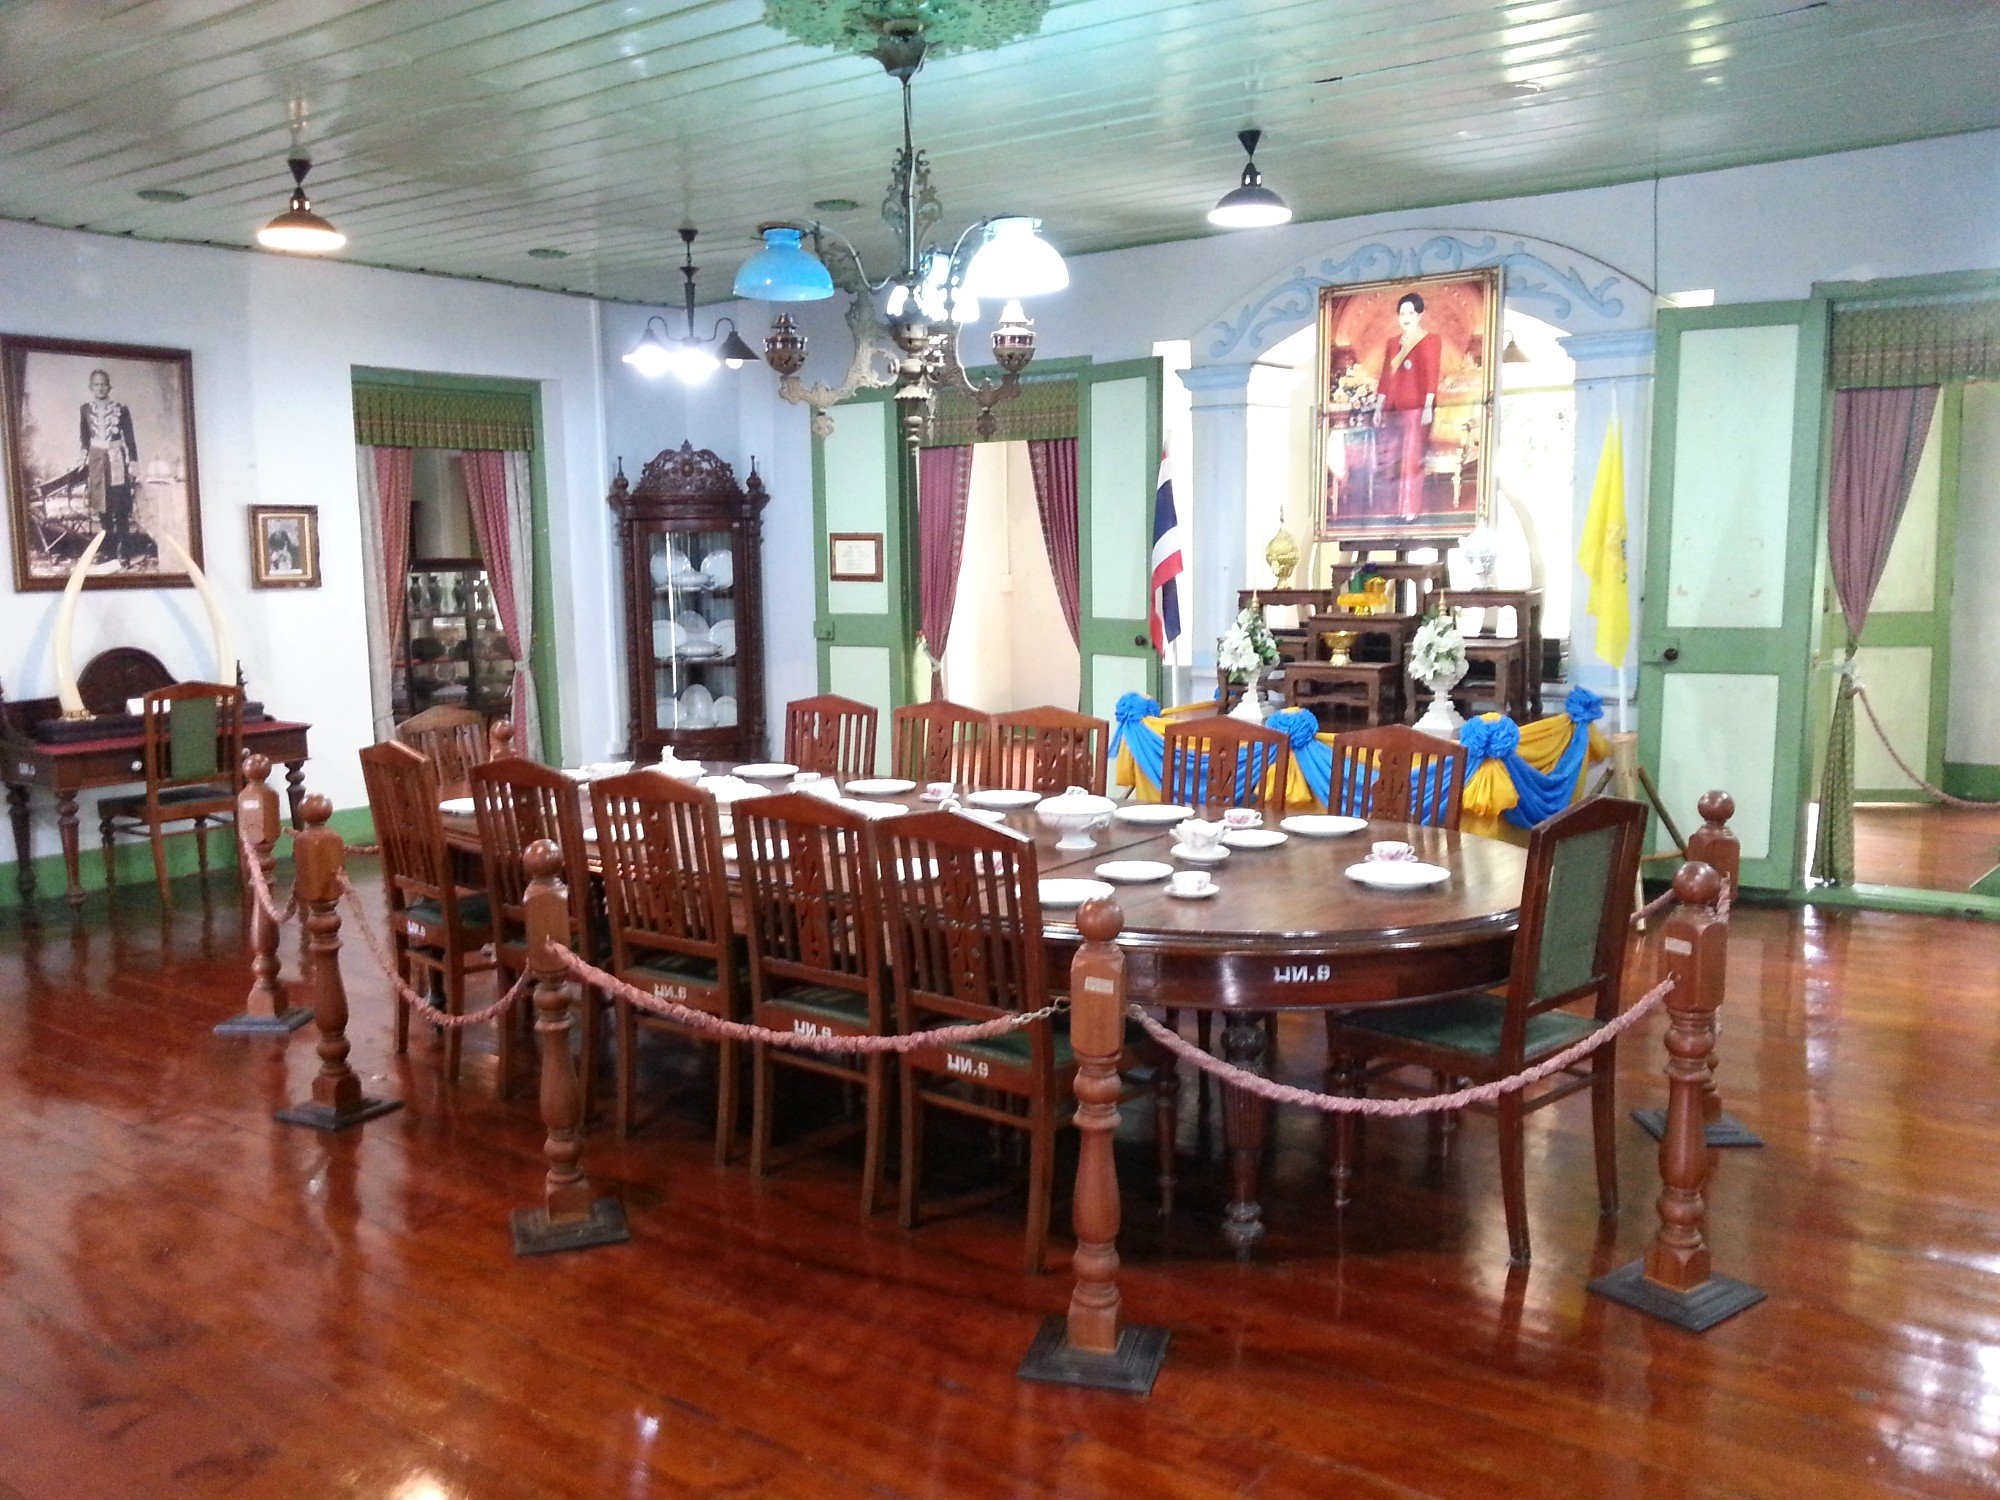 Dining room at the Khum Chao Luang Museum